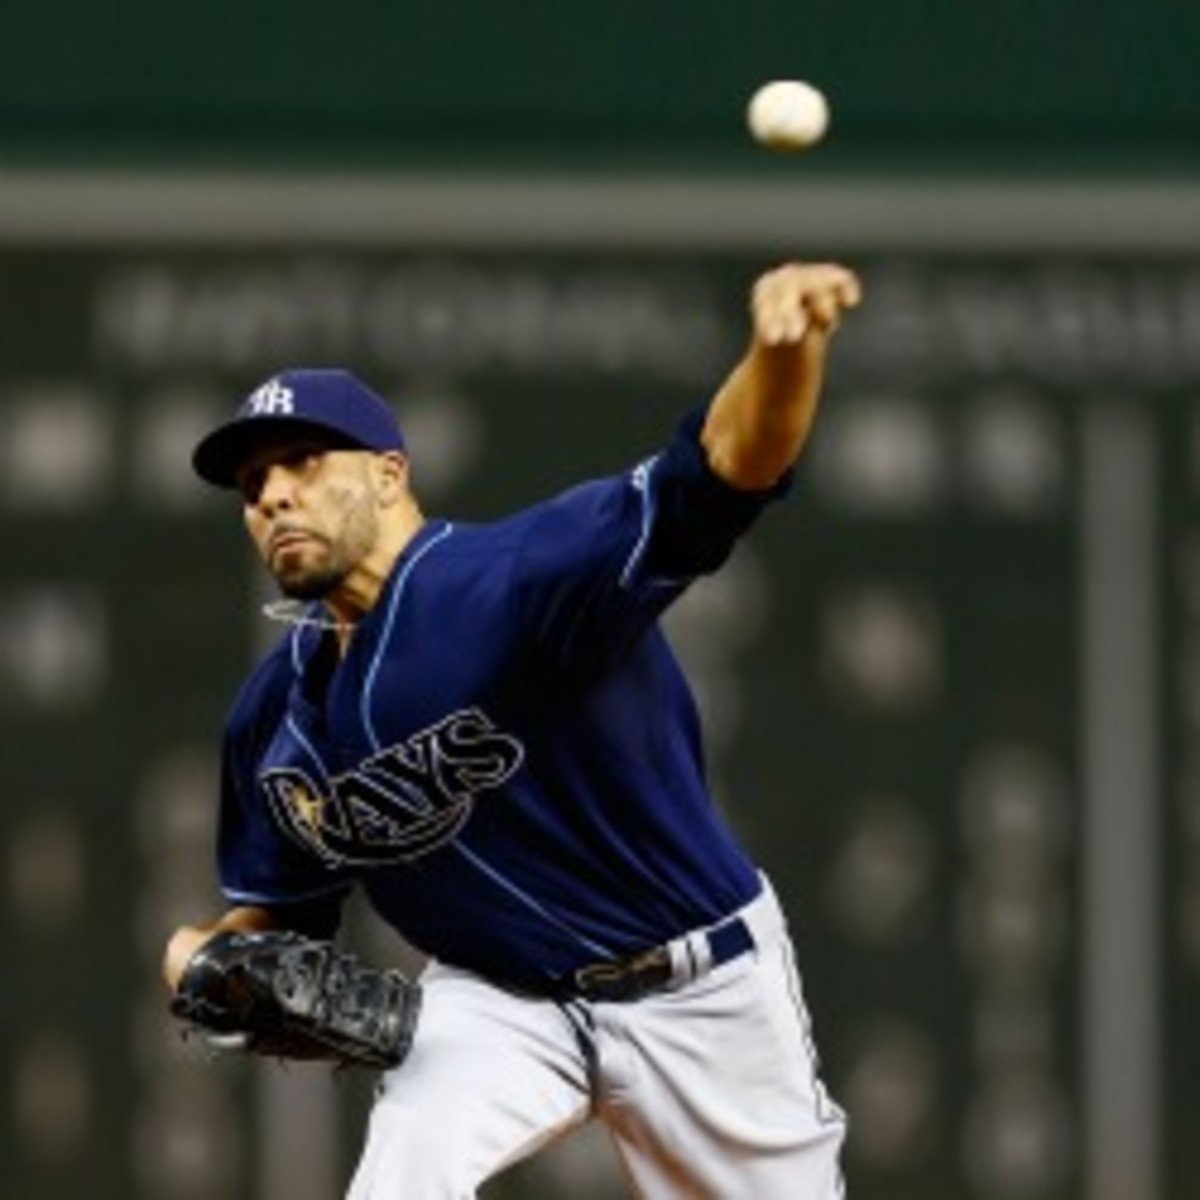 Rays pitcher David Price says he wouldn't play for the Yankees because of their rule forbidding facial hair. (Jared Wickerham/Getty Images)